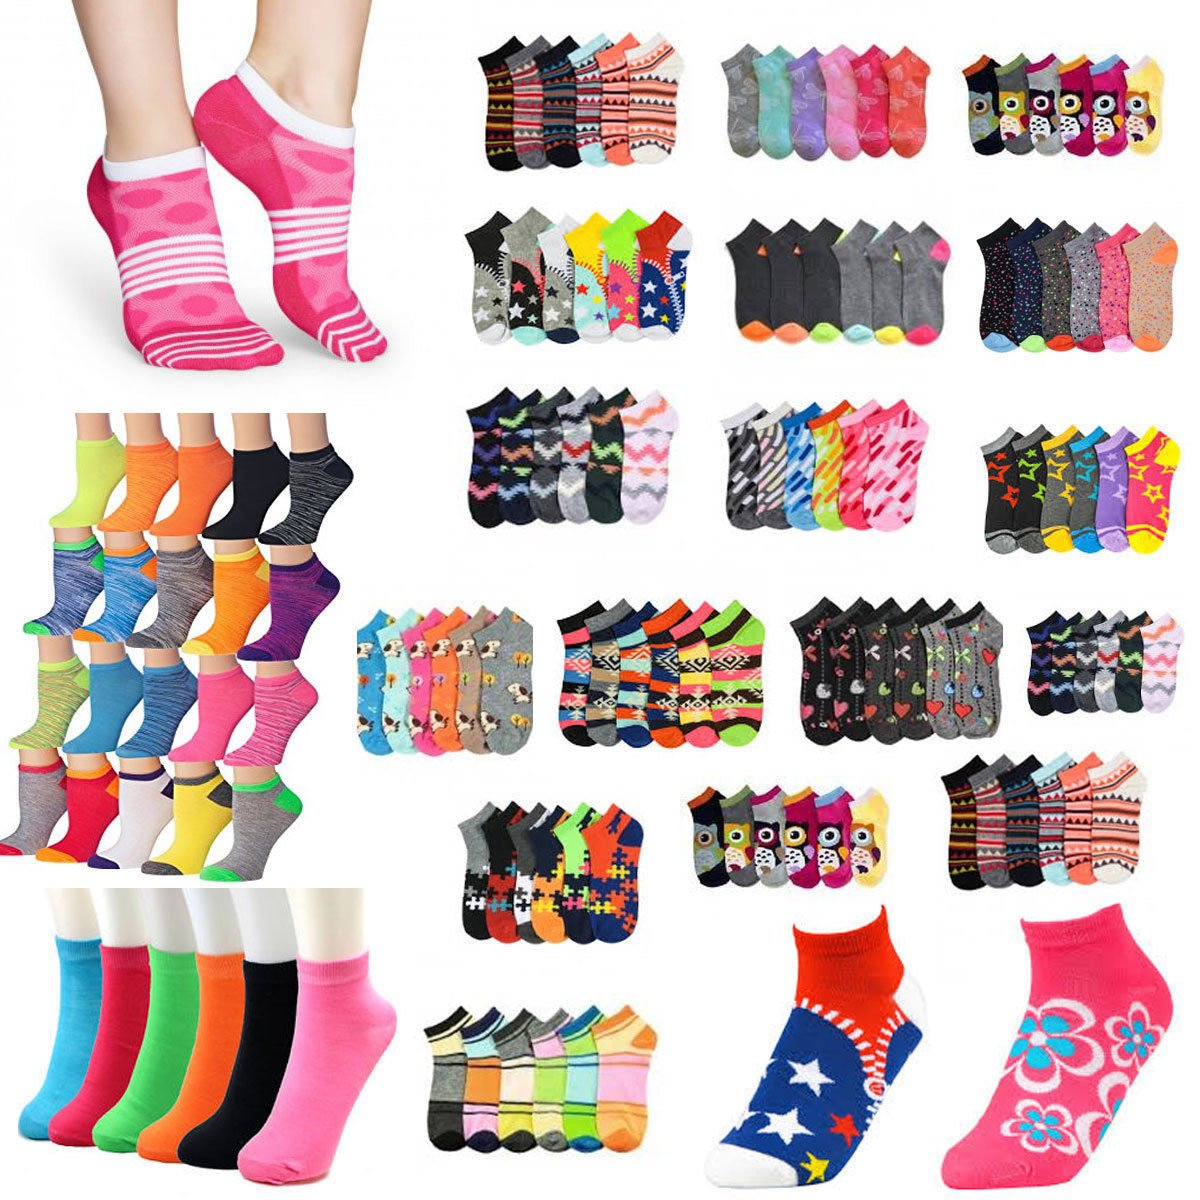 Size 6-8 Girl Assorted Designs Ankle No Show Crew Socks Wholesale - Choose Quantity (36) by zr_dnm